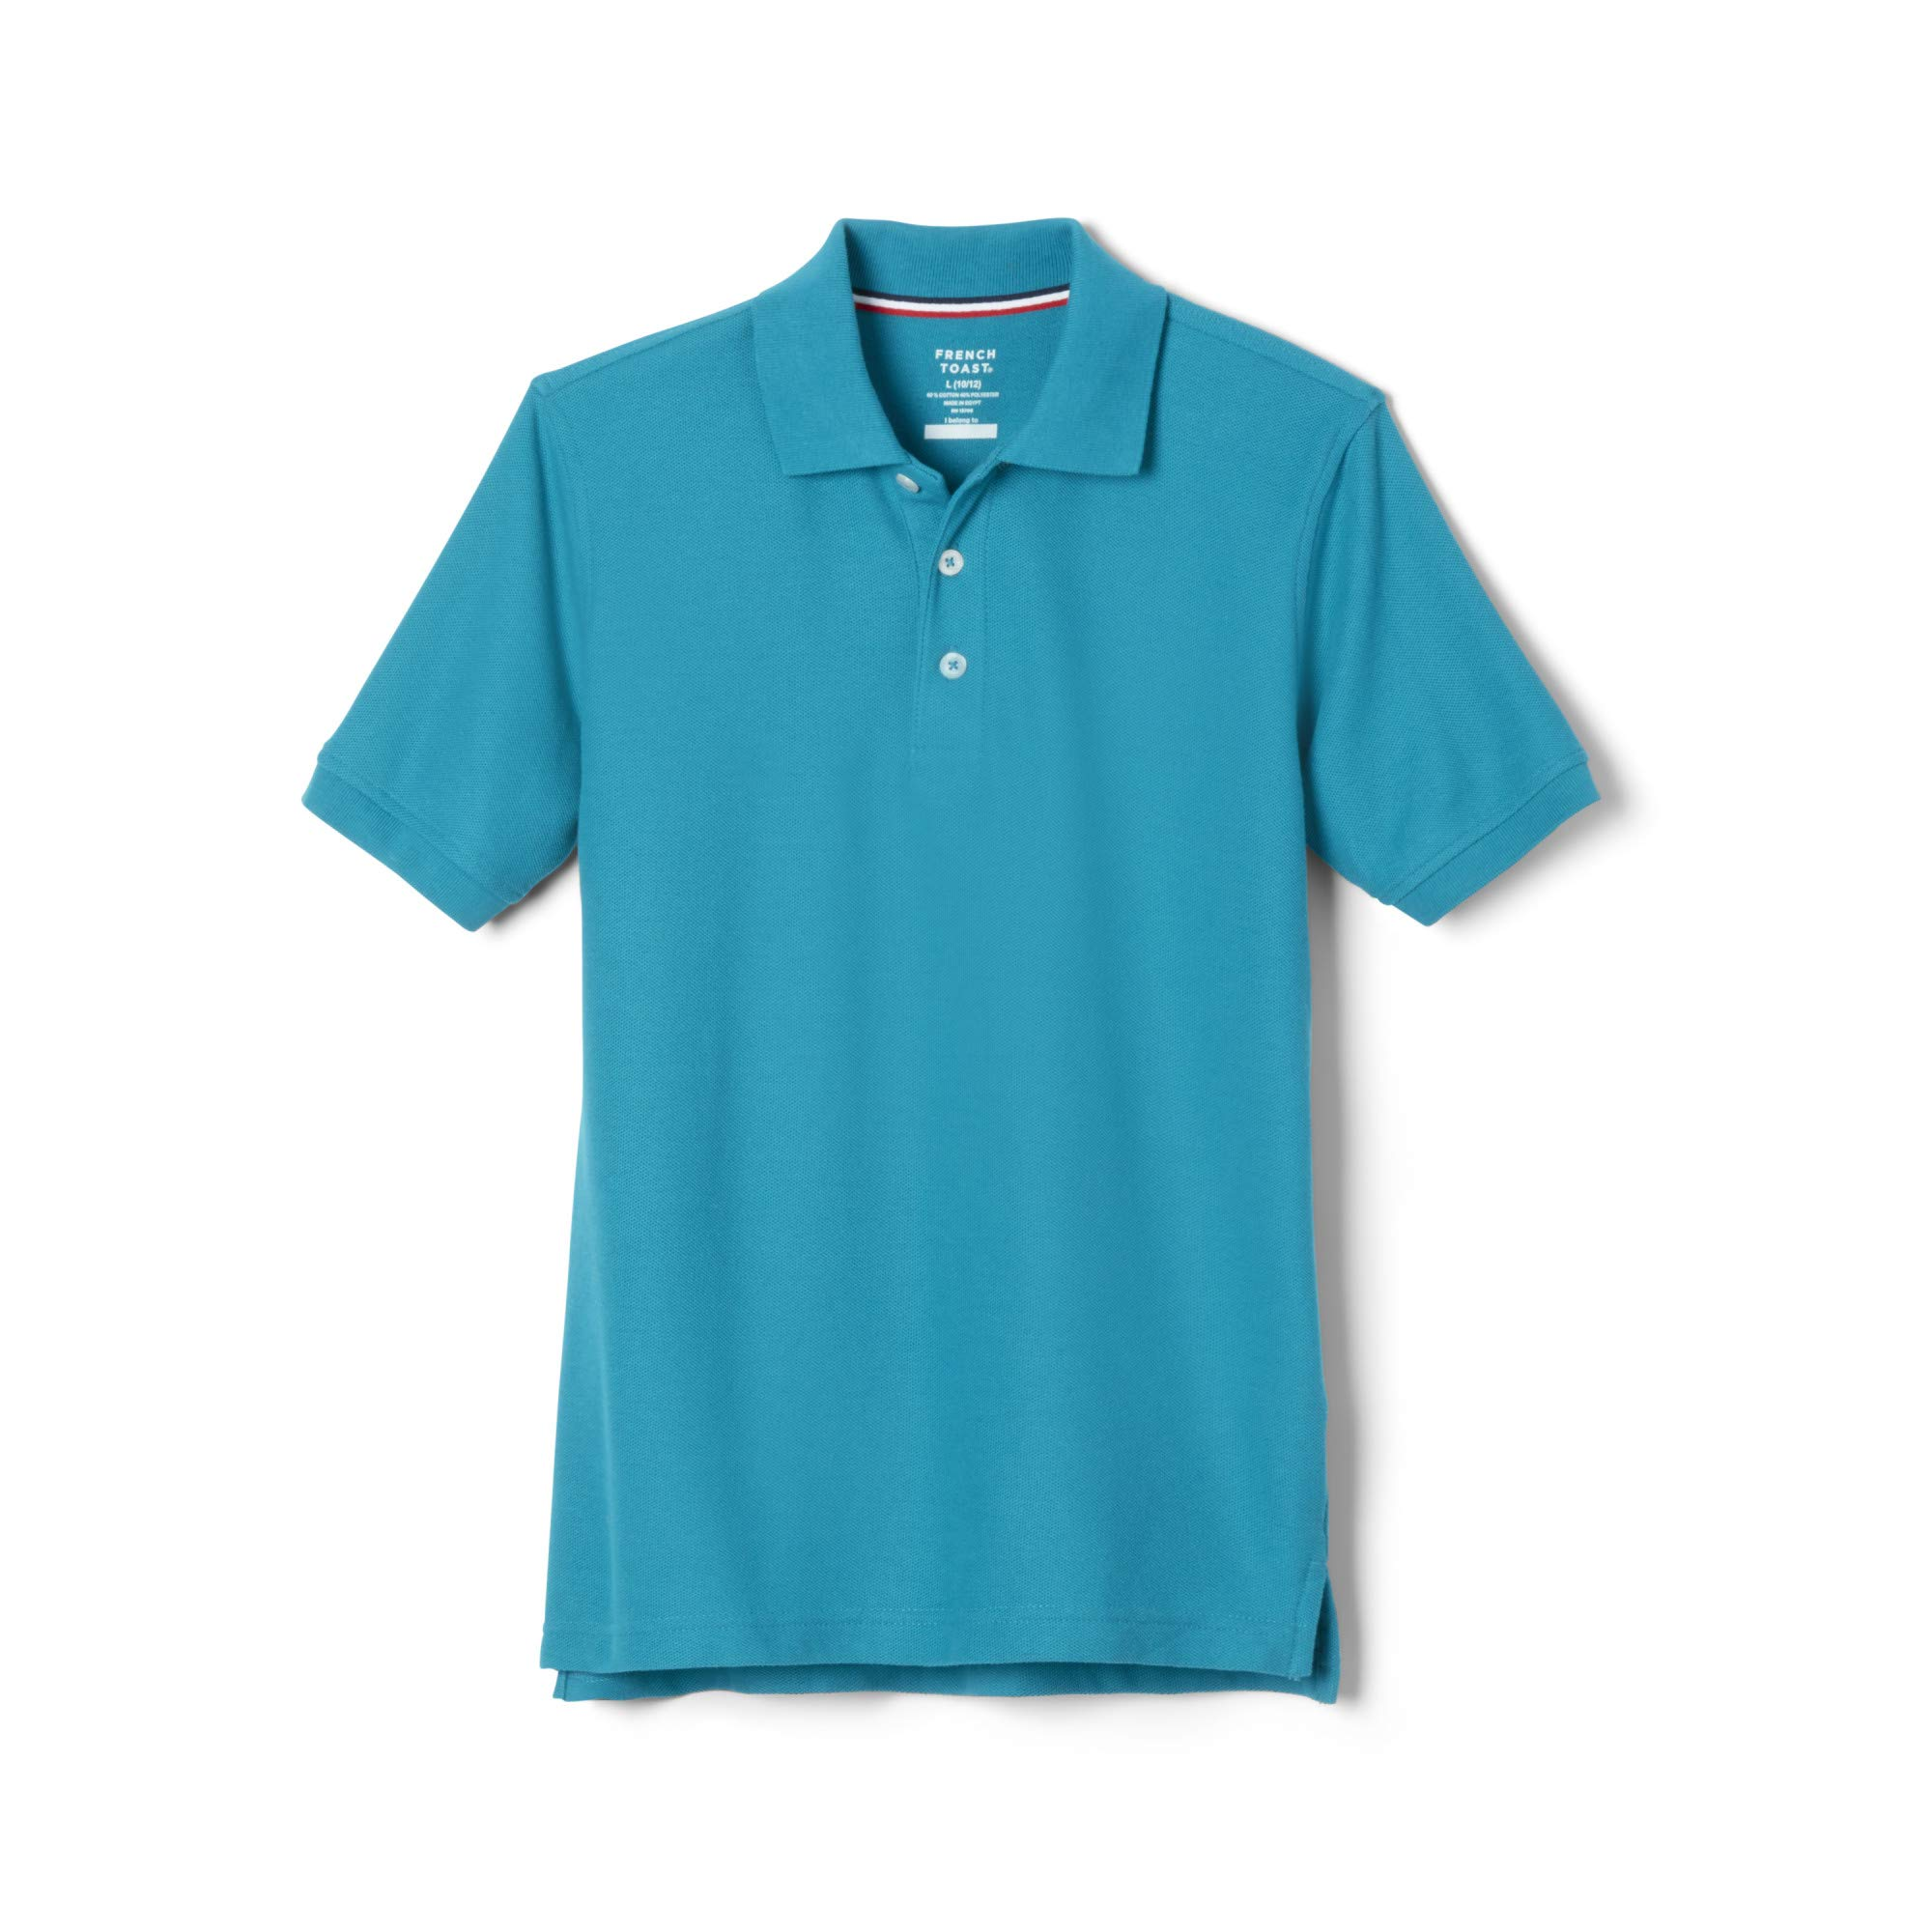 French Toast Boys' Big Short Sleeve Pique Polo Shirt (Standard & Husky), Teal, L (10/12)